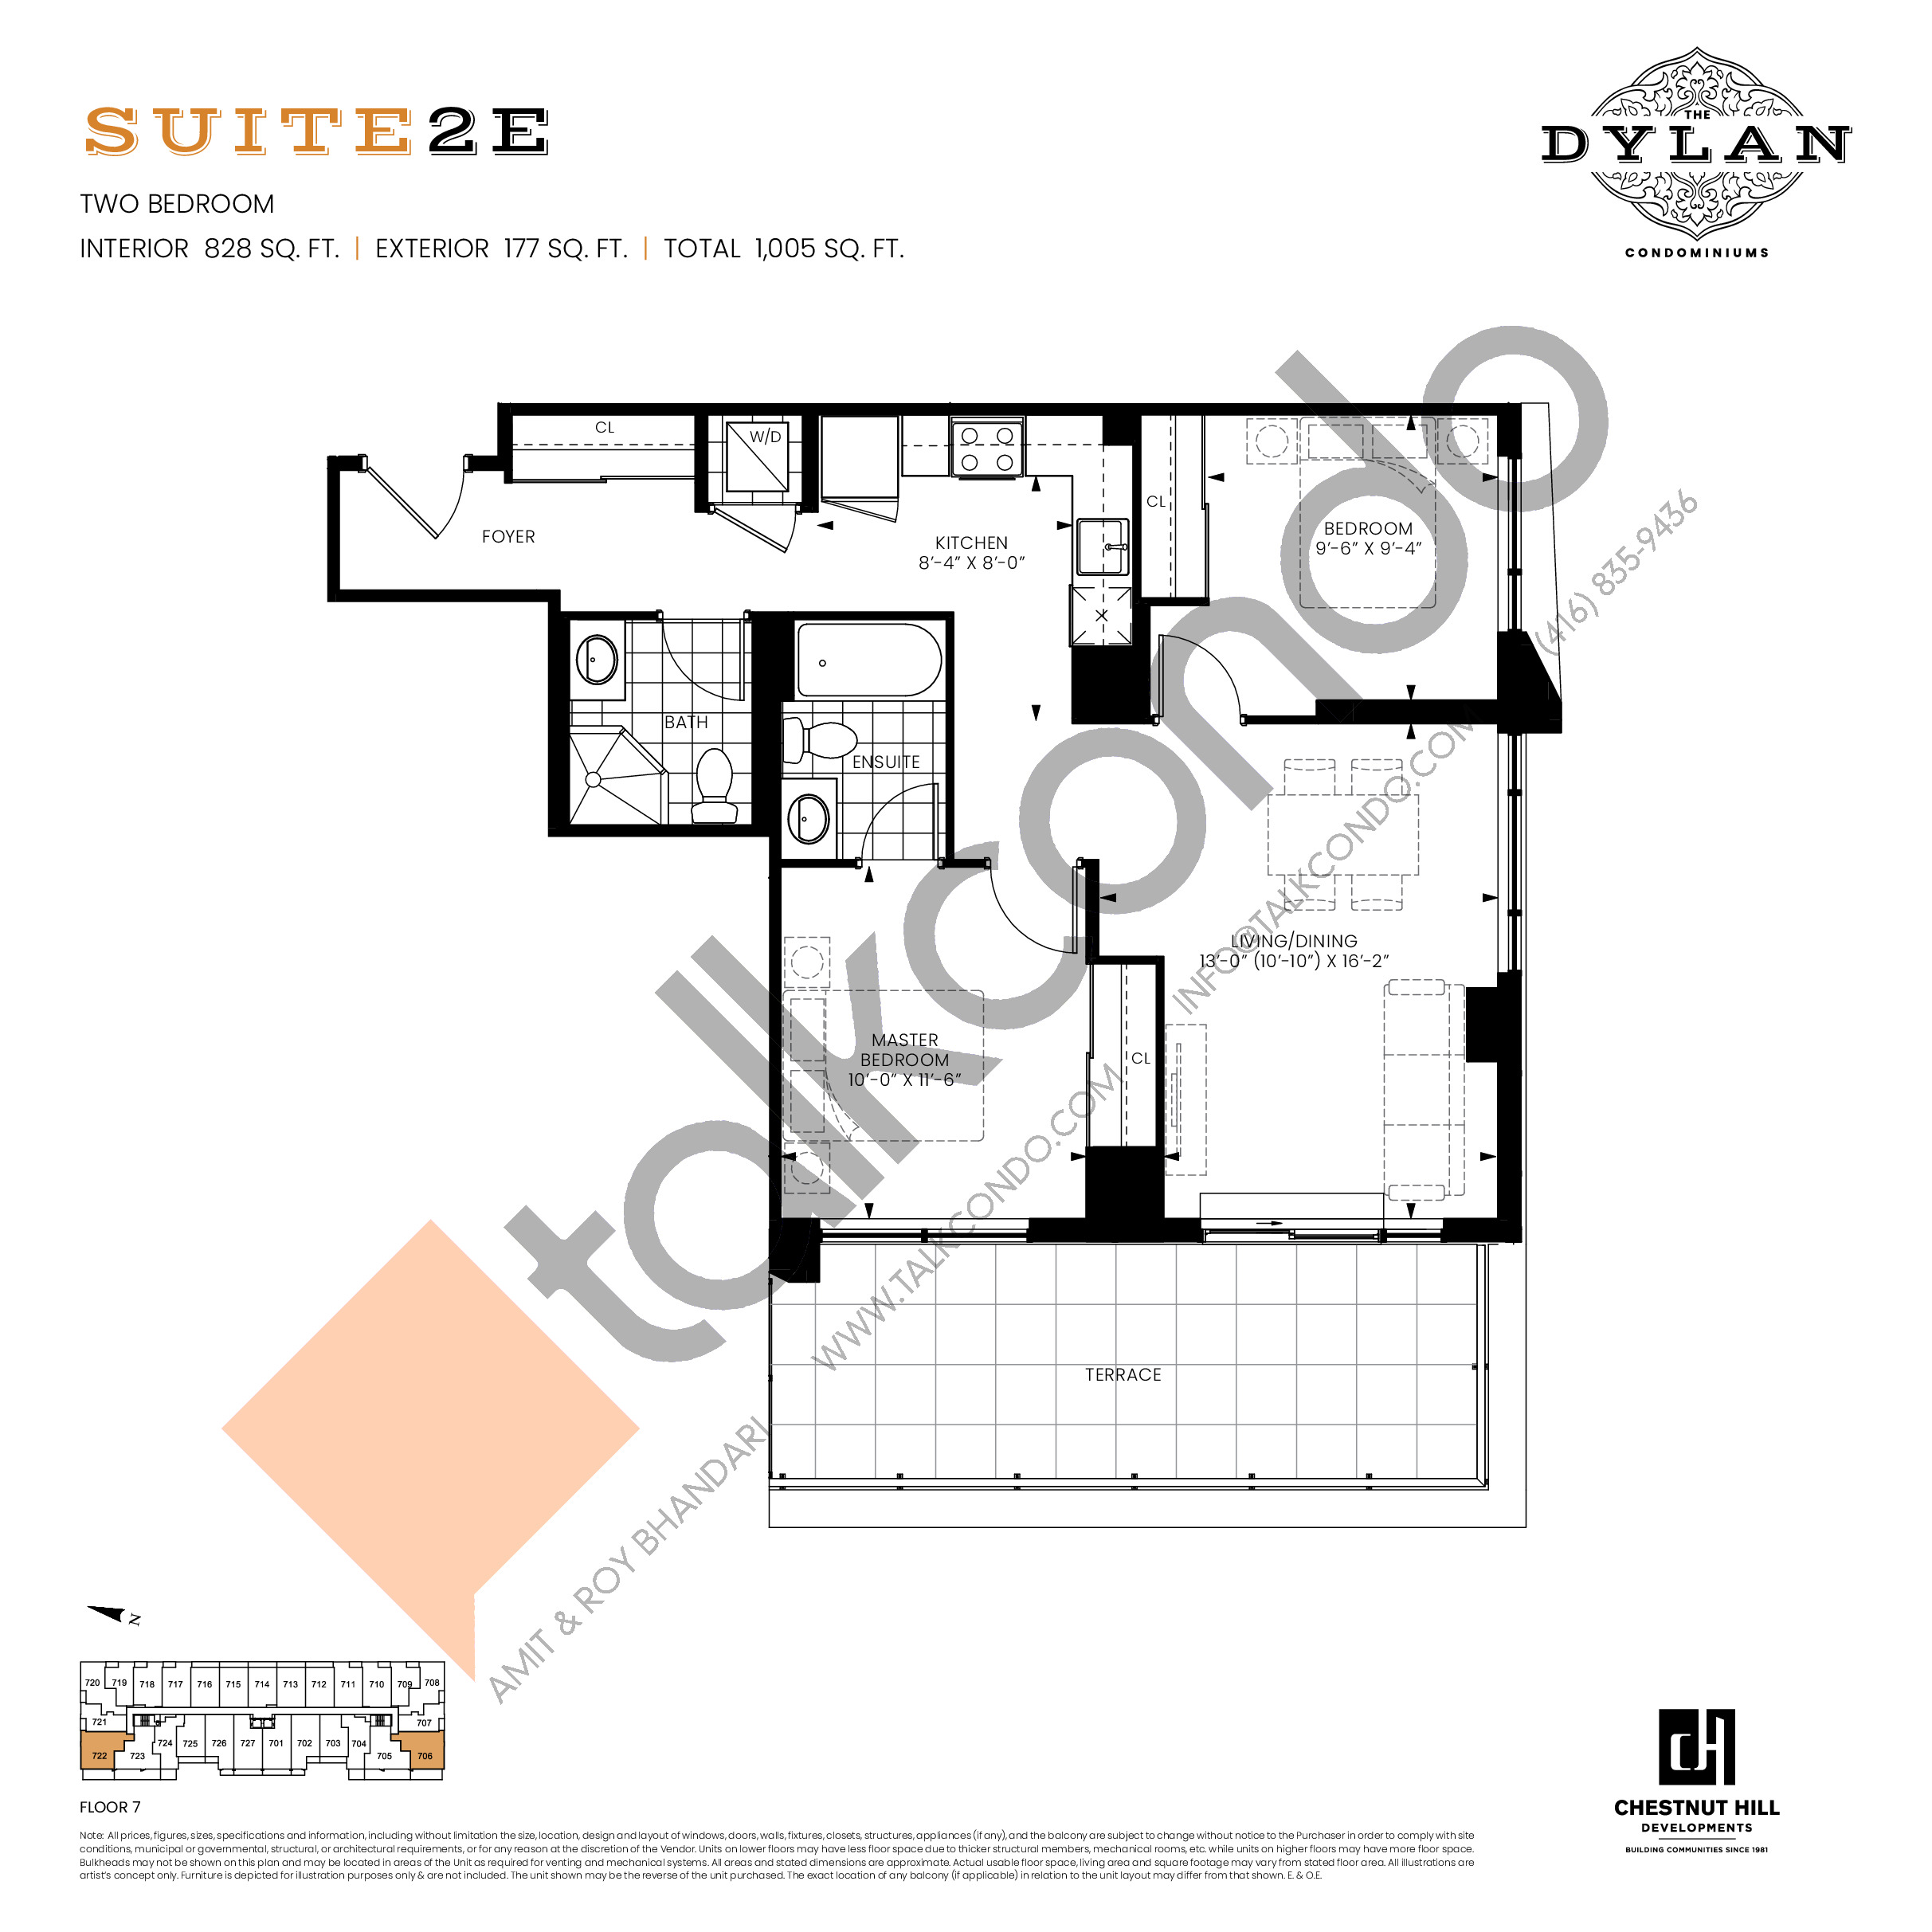 Suite 2E Floor Plan at The Dylan Condos - 828 sq.ft